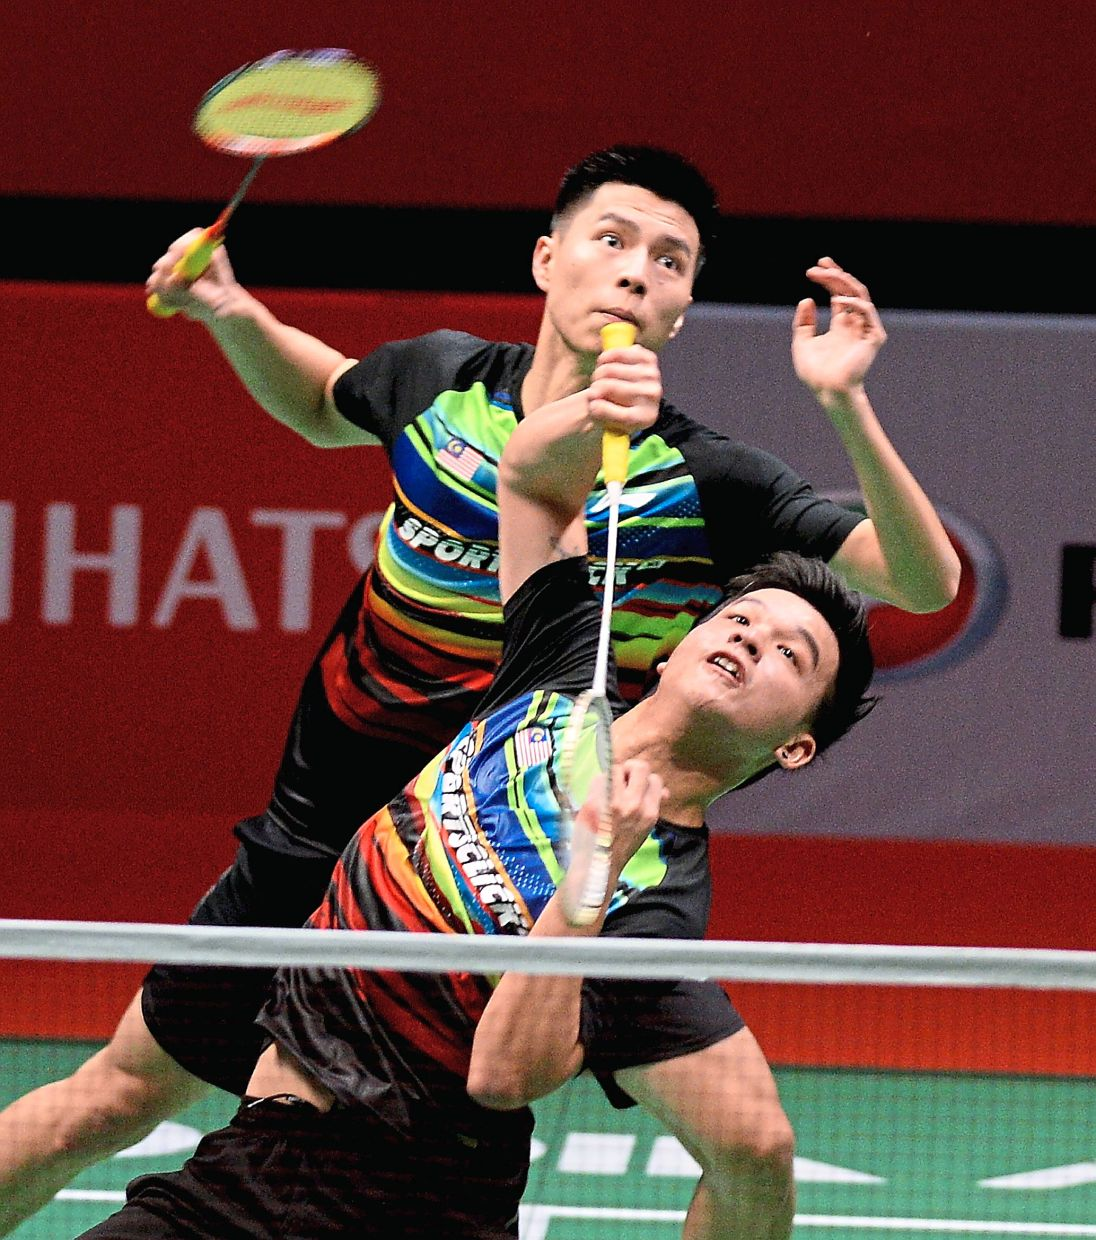 Also through: Ong Yew Sin (back) and Teo Ee Yi will play India's Satwiksairaj Rankireddy-Chirag Shetty in the quarter-finals today.